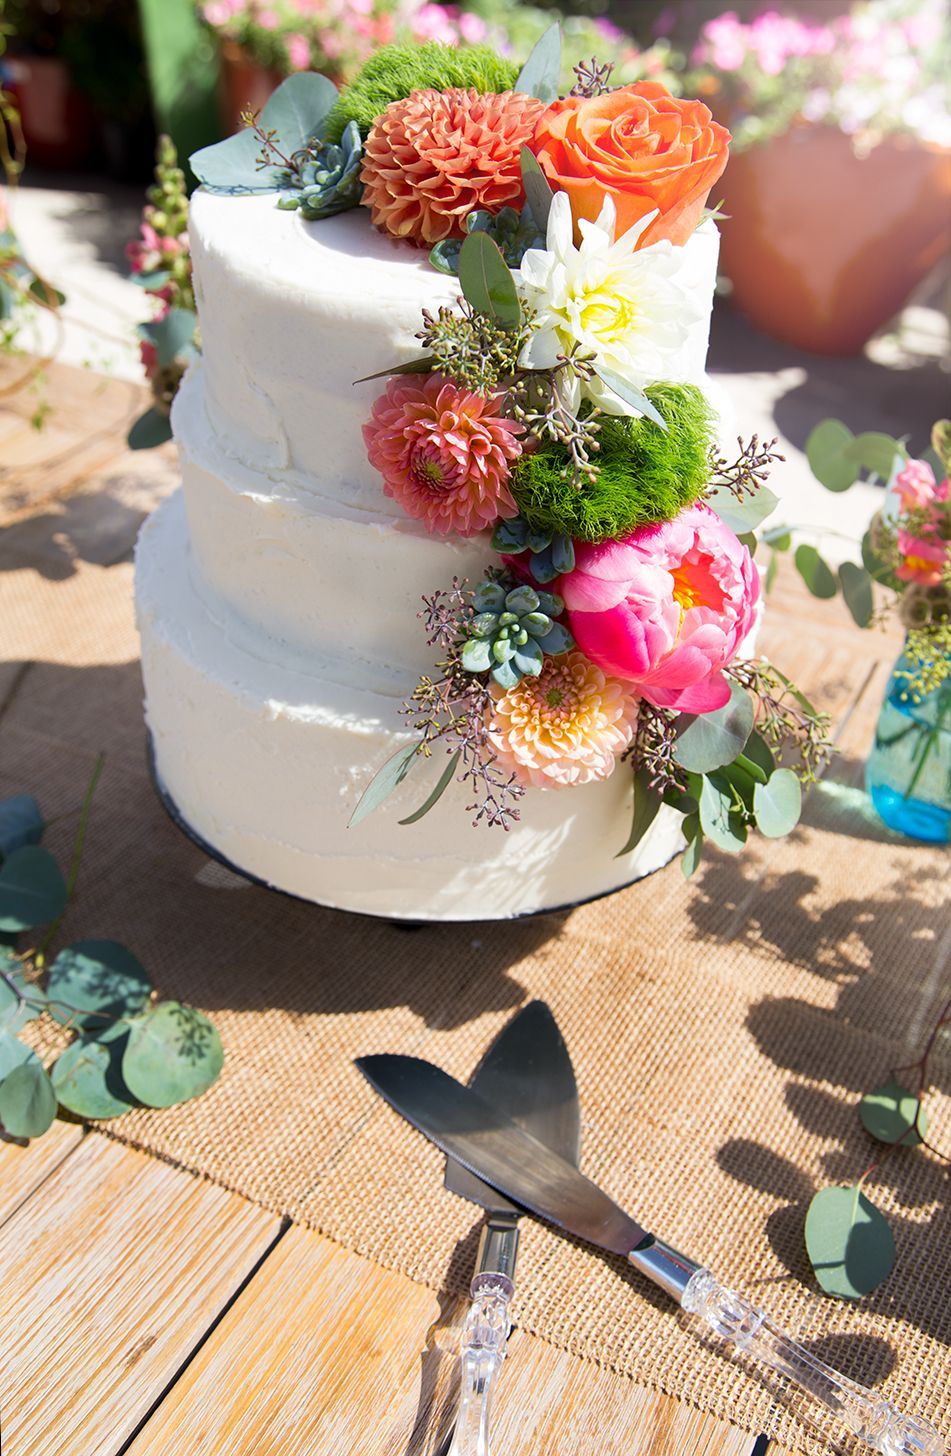 Rustic white wedding cake with bright florals